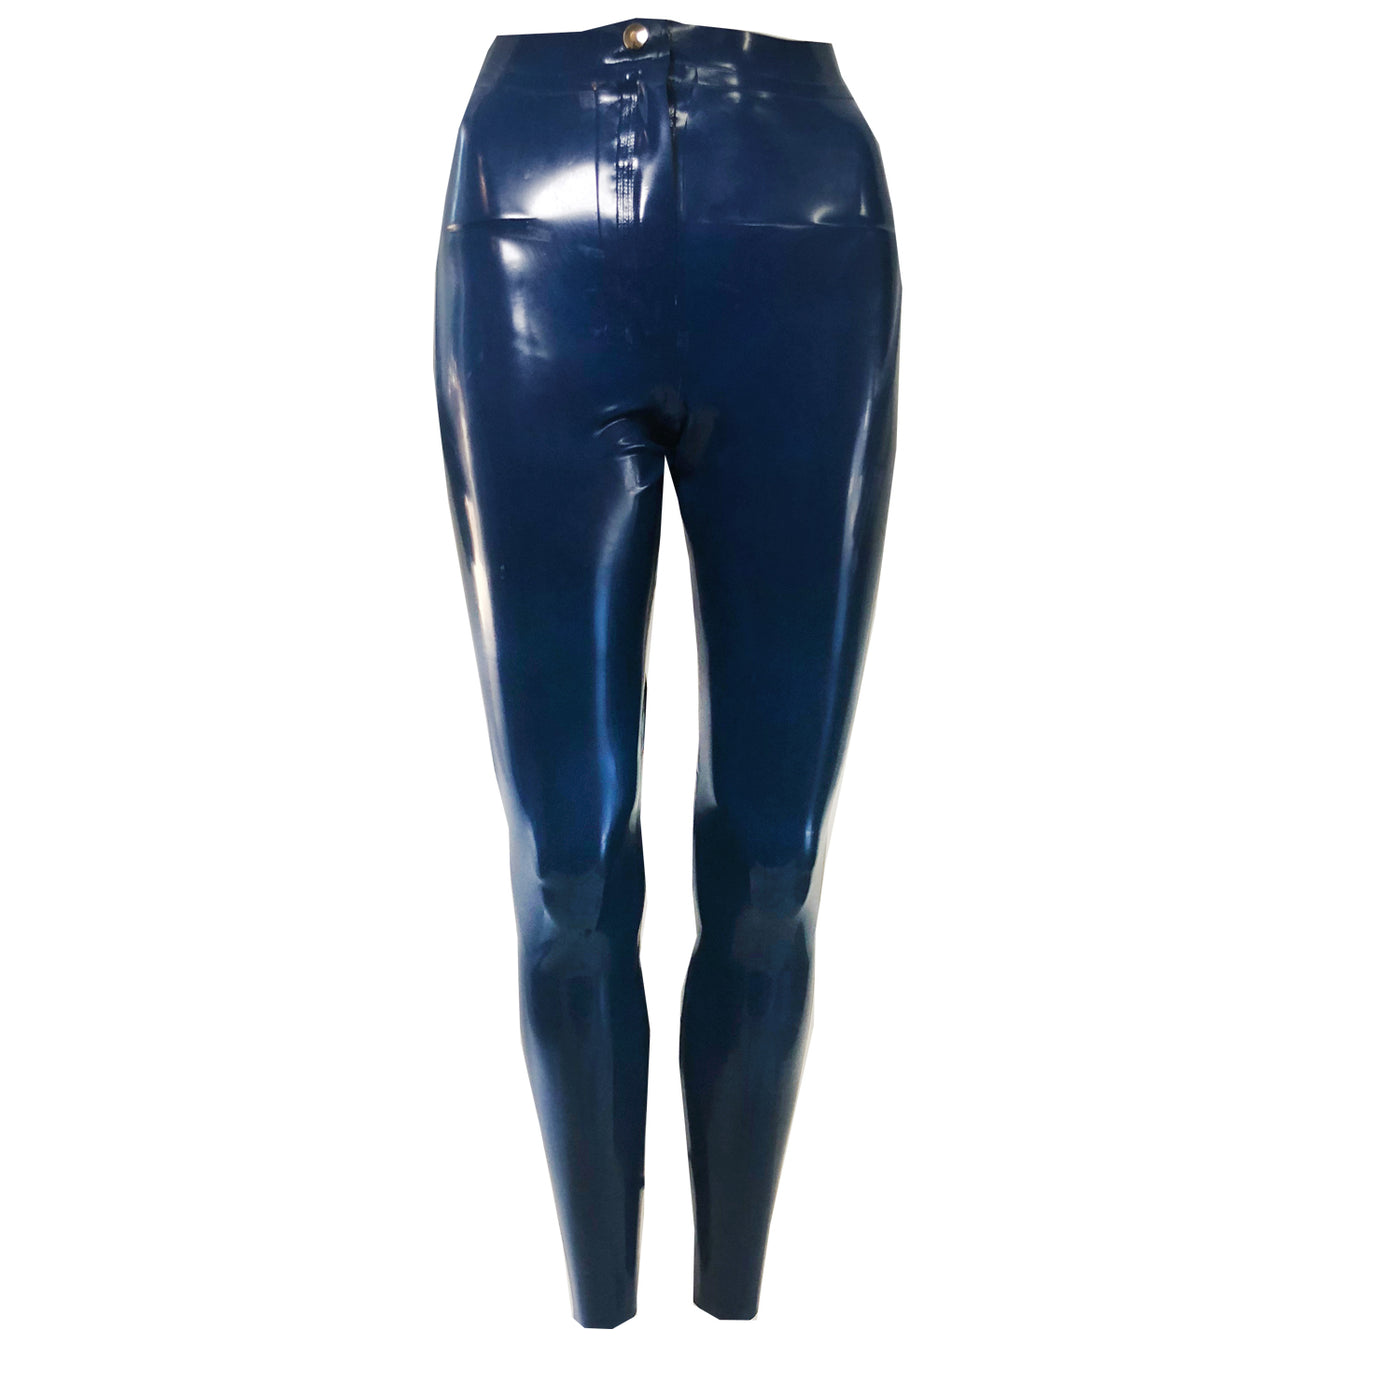 Latex jeans